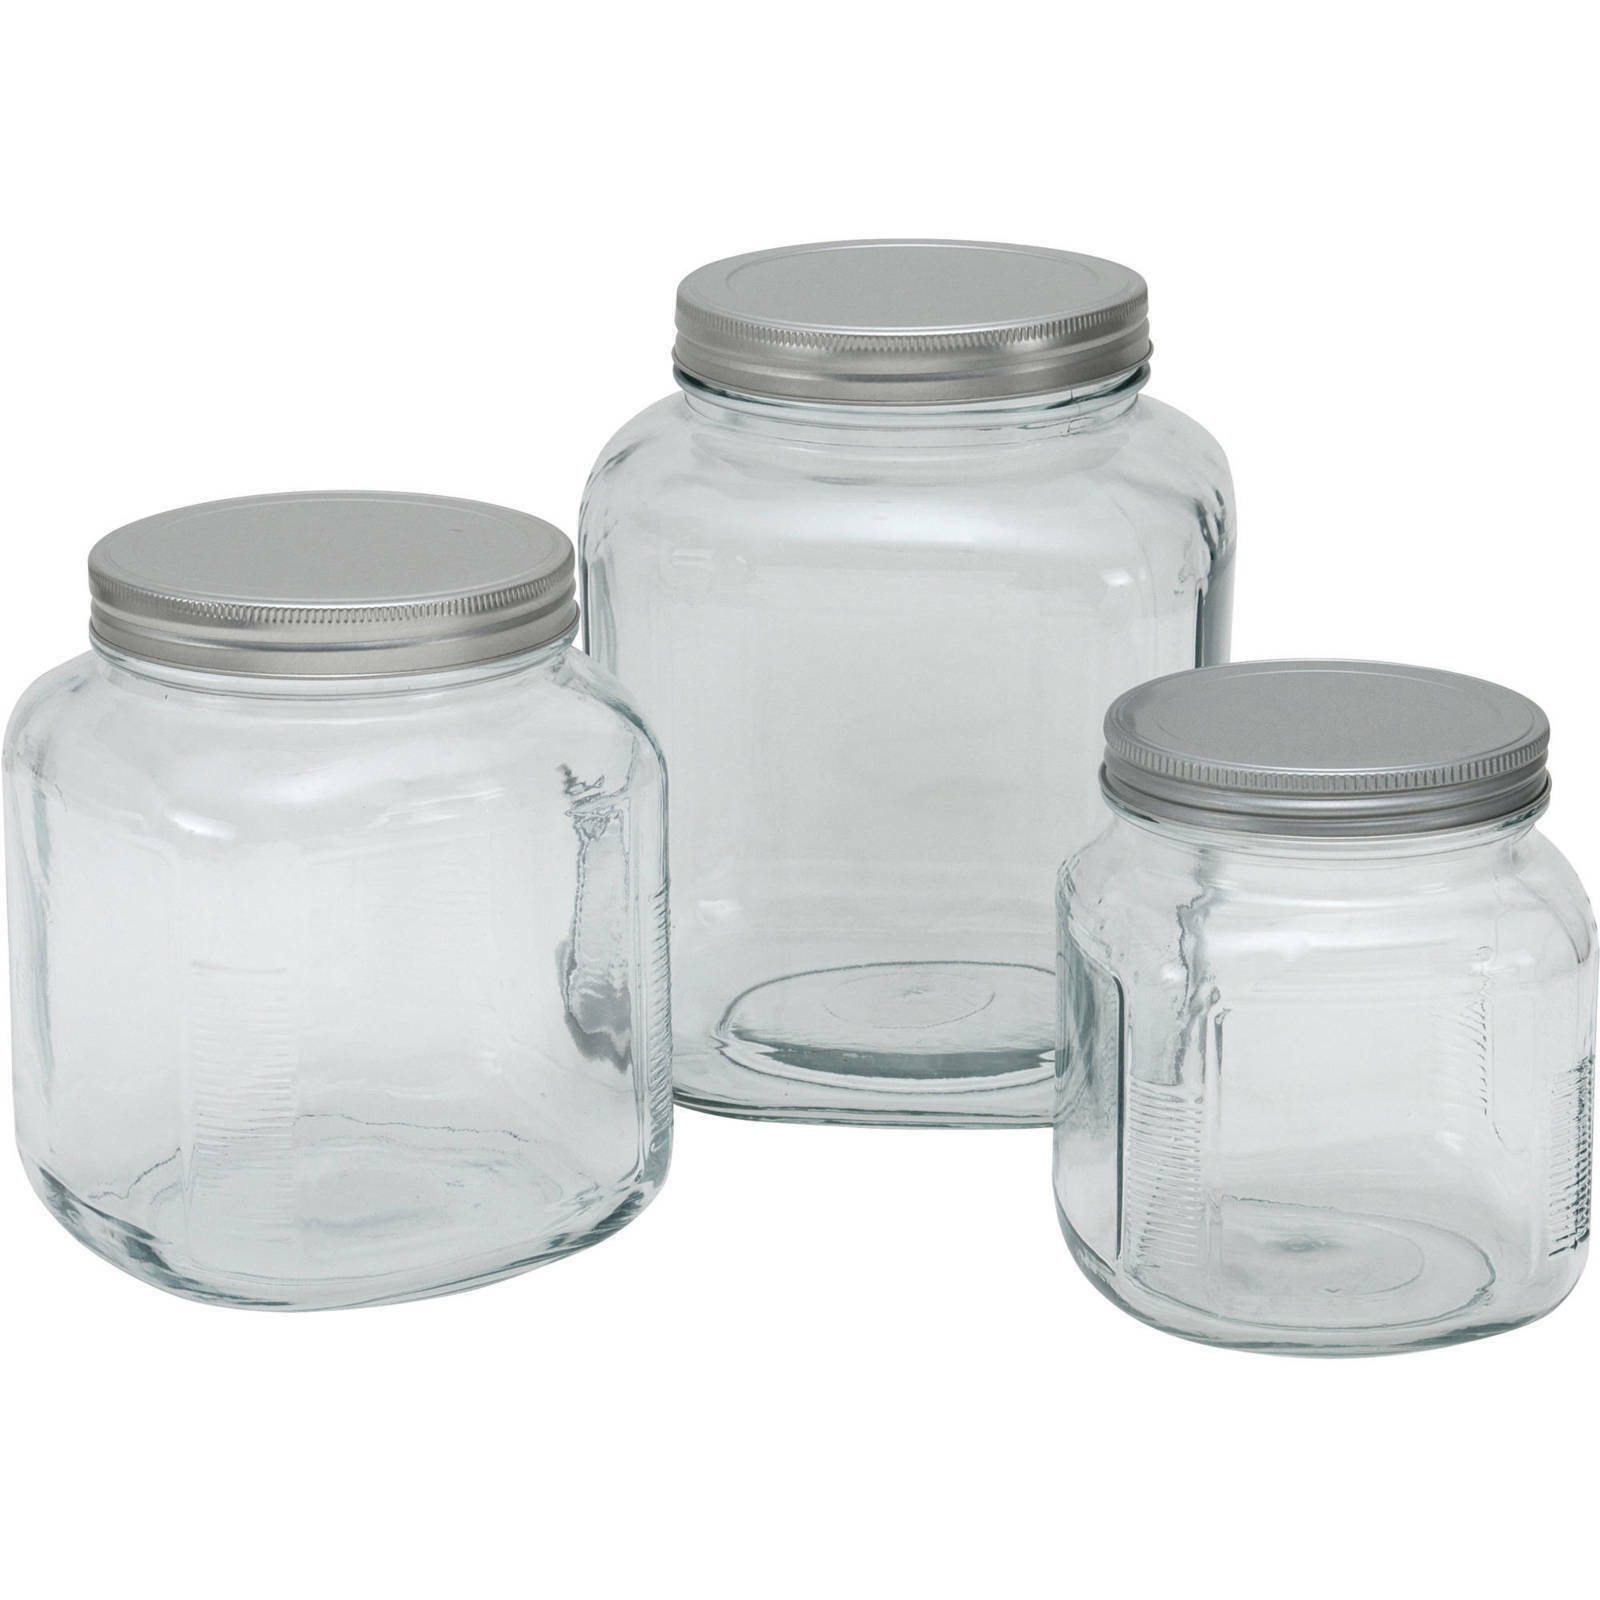 Glass Cracker Jar with Lid, 2 Piece Keep Your Food Fresh And